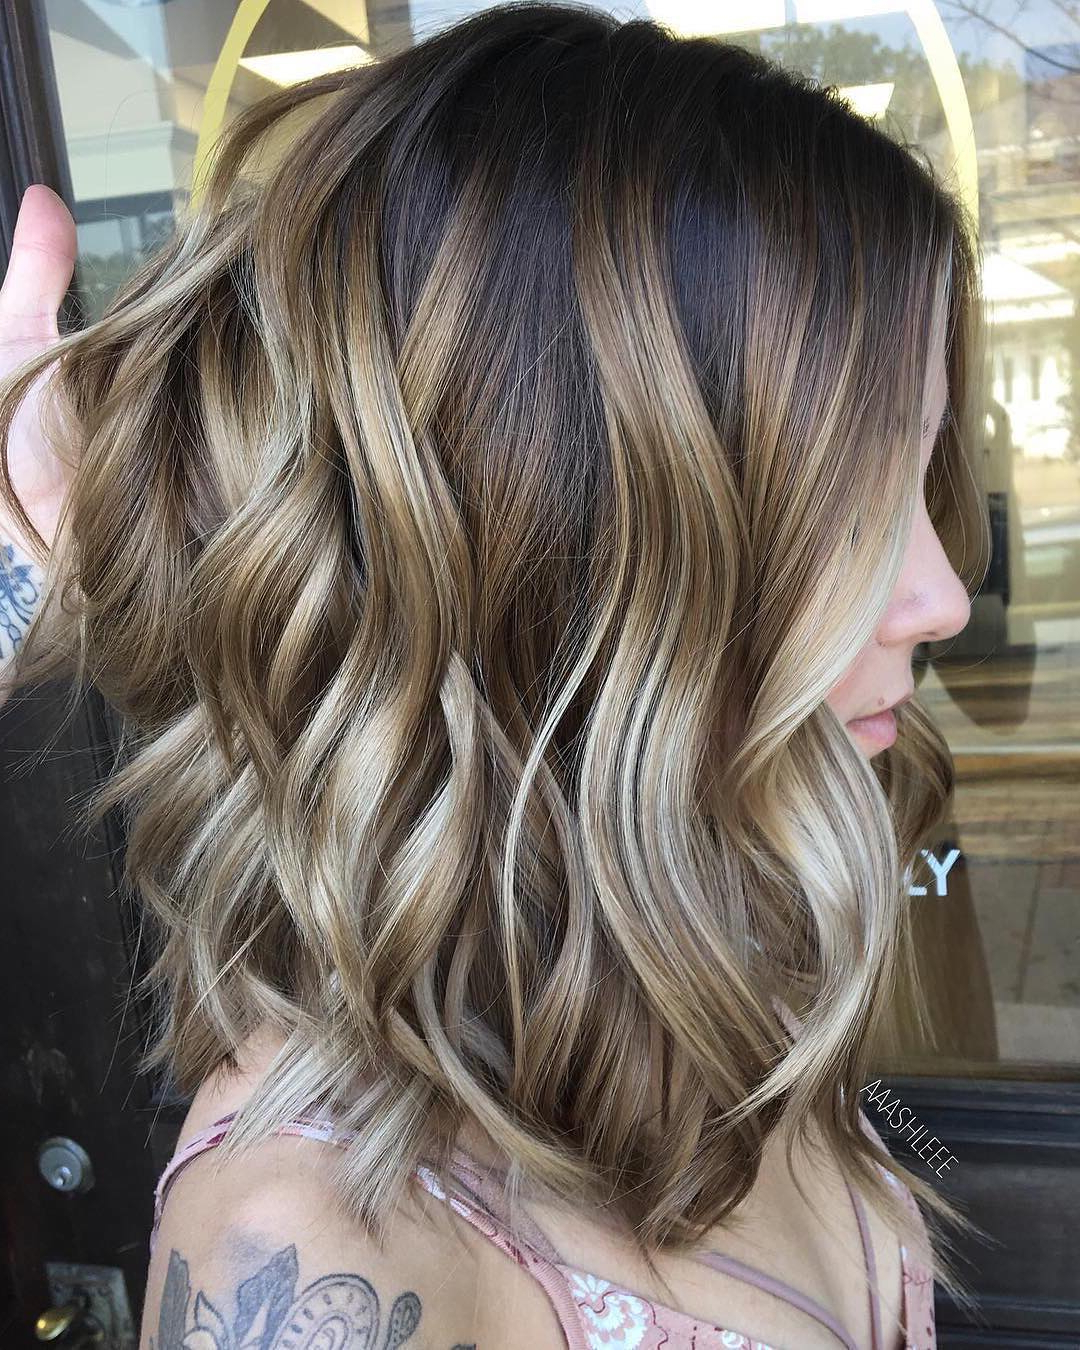 10 Ombre Balayage Hairstyles For Medium Length Hair, Hair Color 2018 With Regard To Loosely Waved Messy Brunette Bob Hairstyles (View 19 of 25)